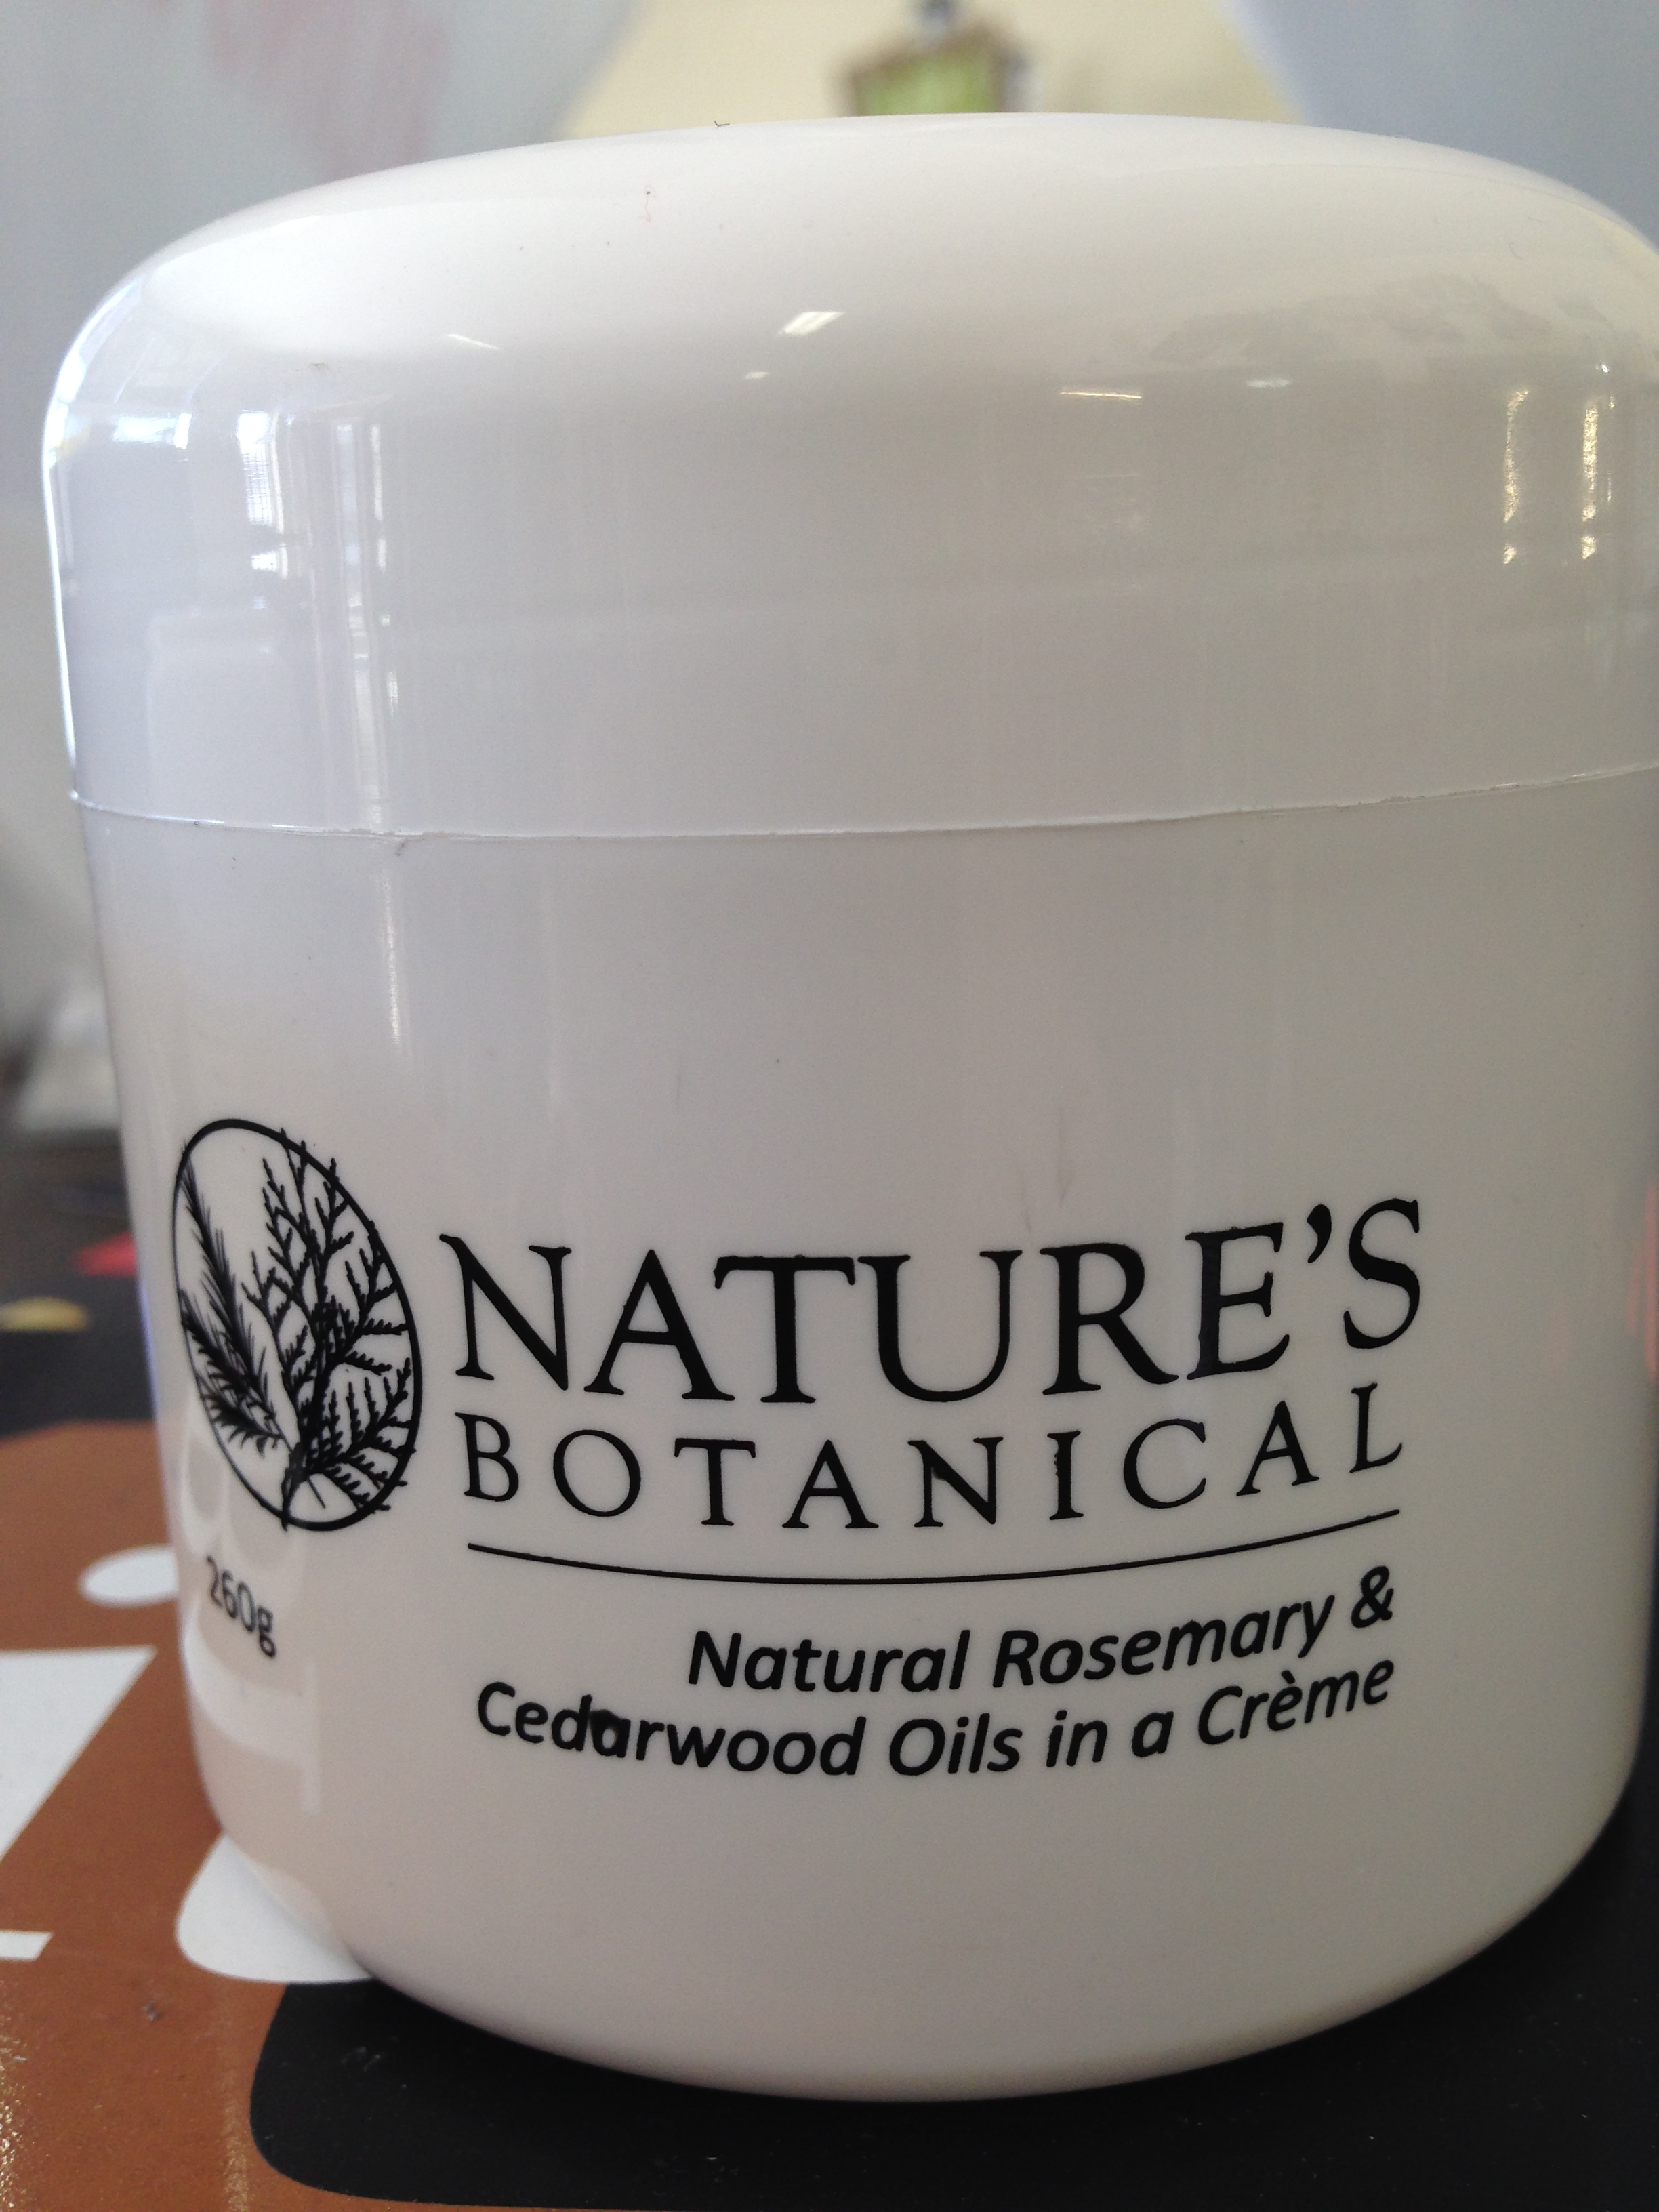 NATURE'S BOTANICAL- Natural Rosemary & Cedarwood Oils in a Creme